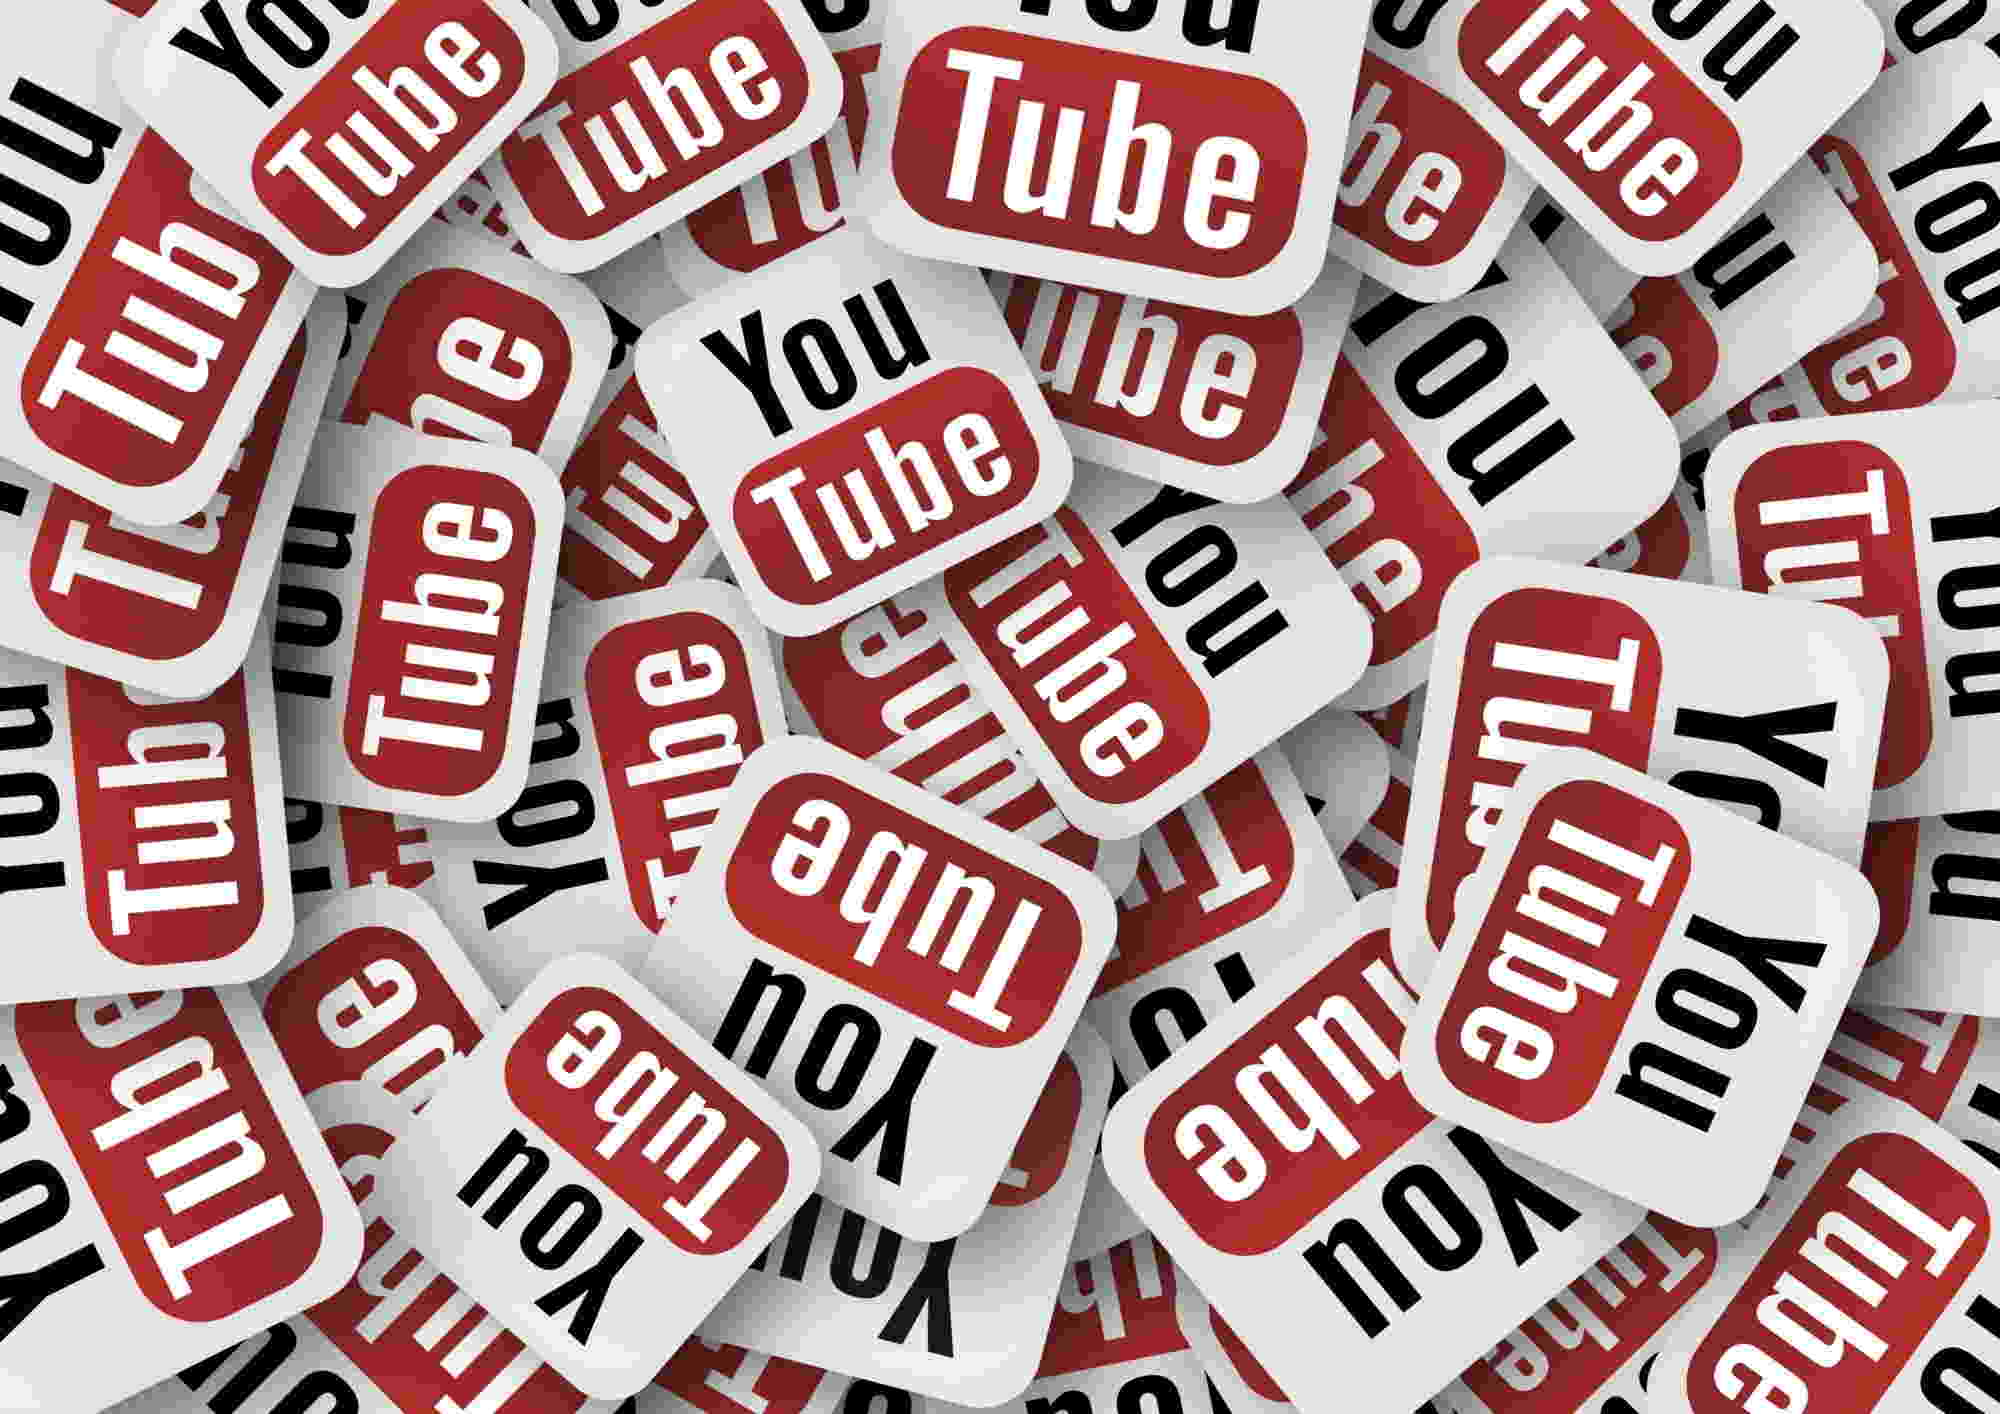 The old method of changing your You Tube channel name was long-winded and required to alter the name and profile image of associated Google account.